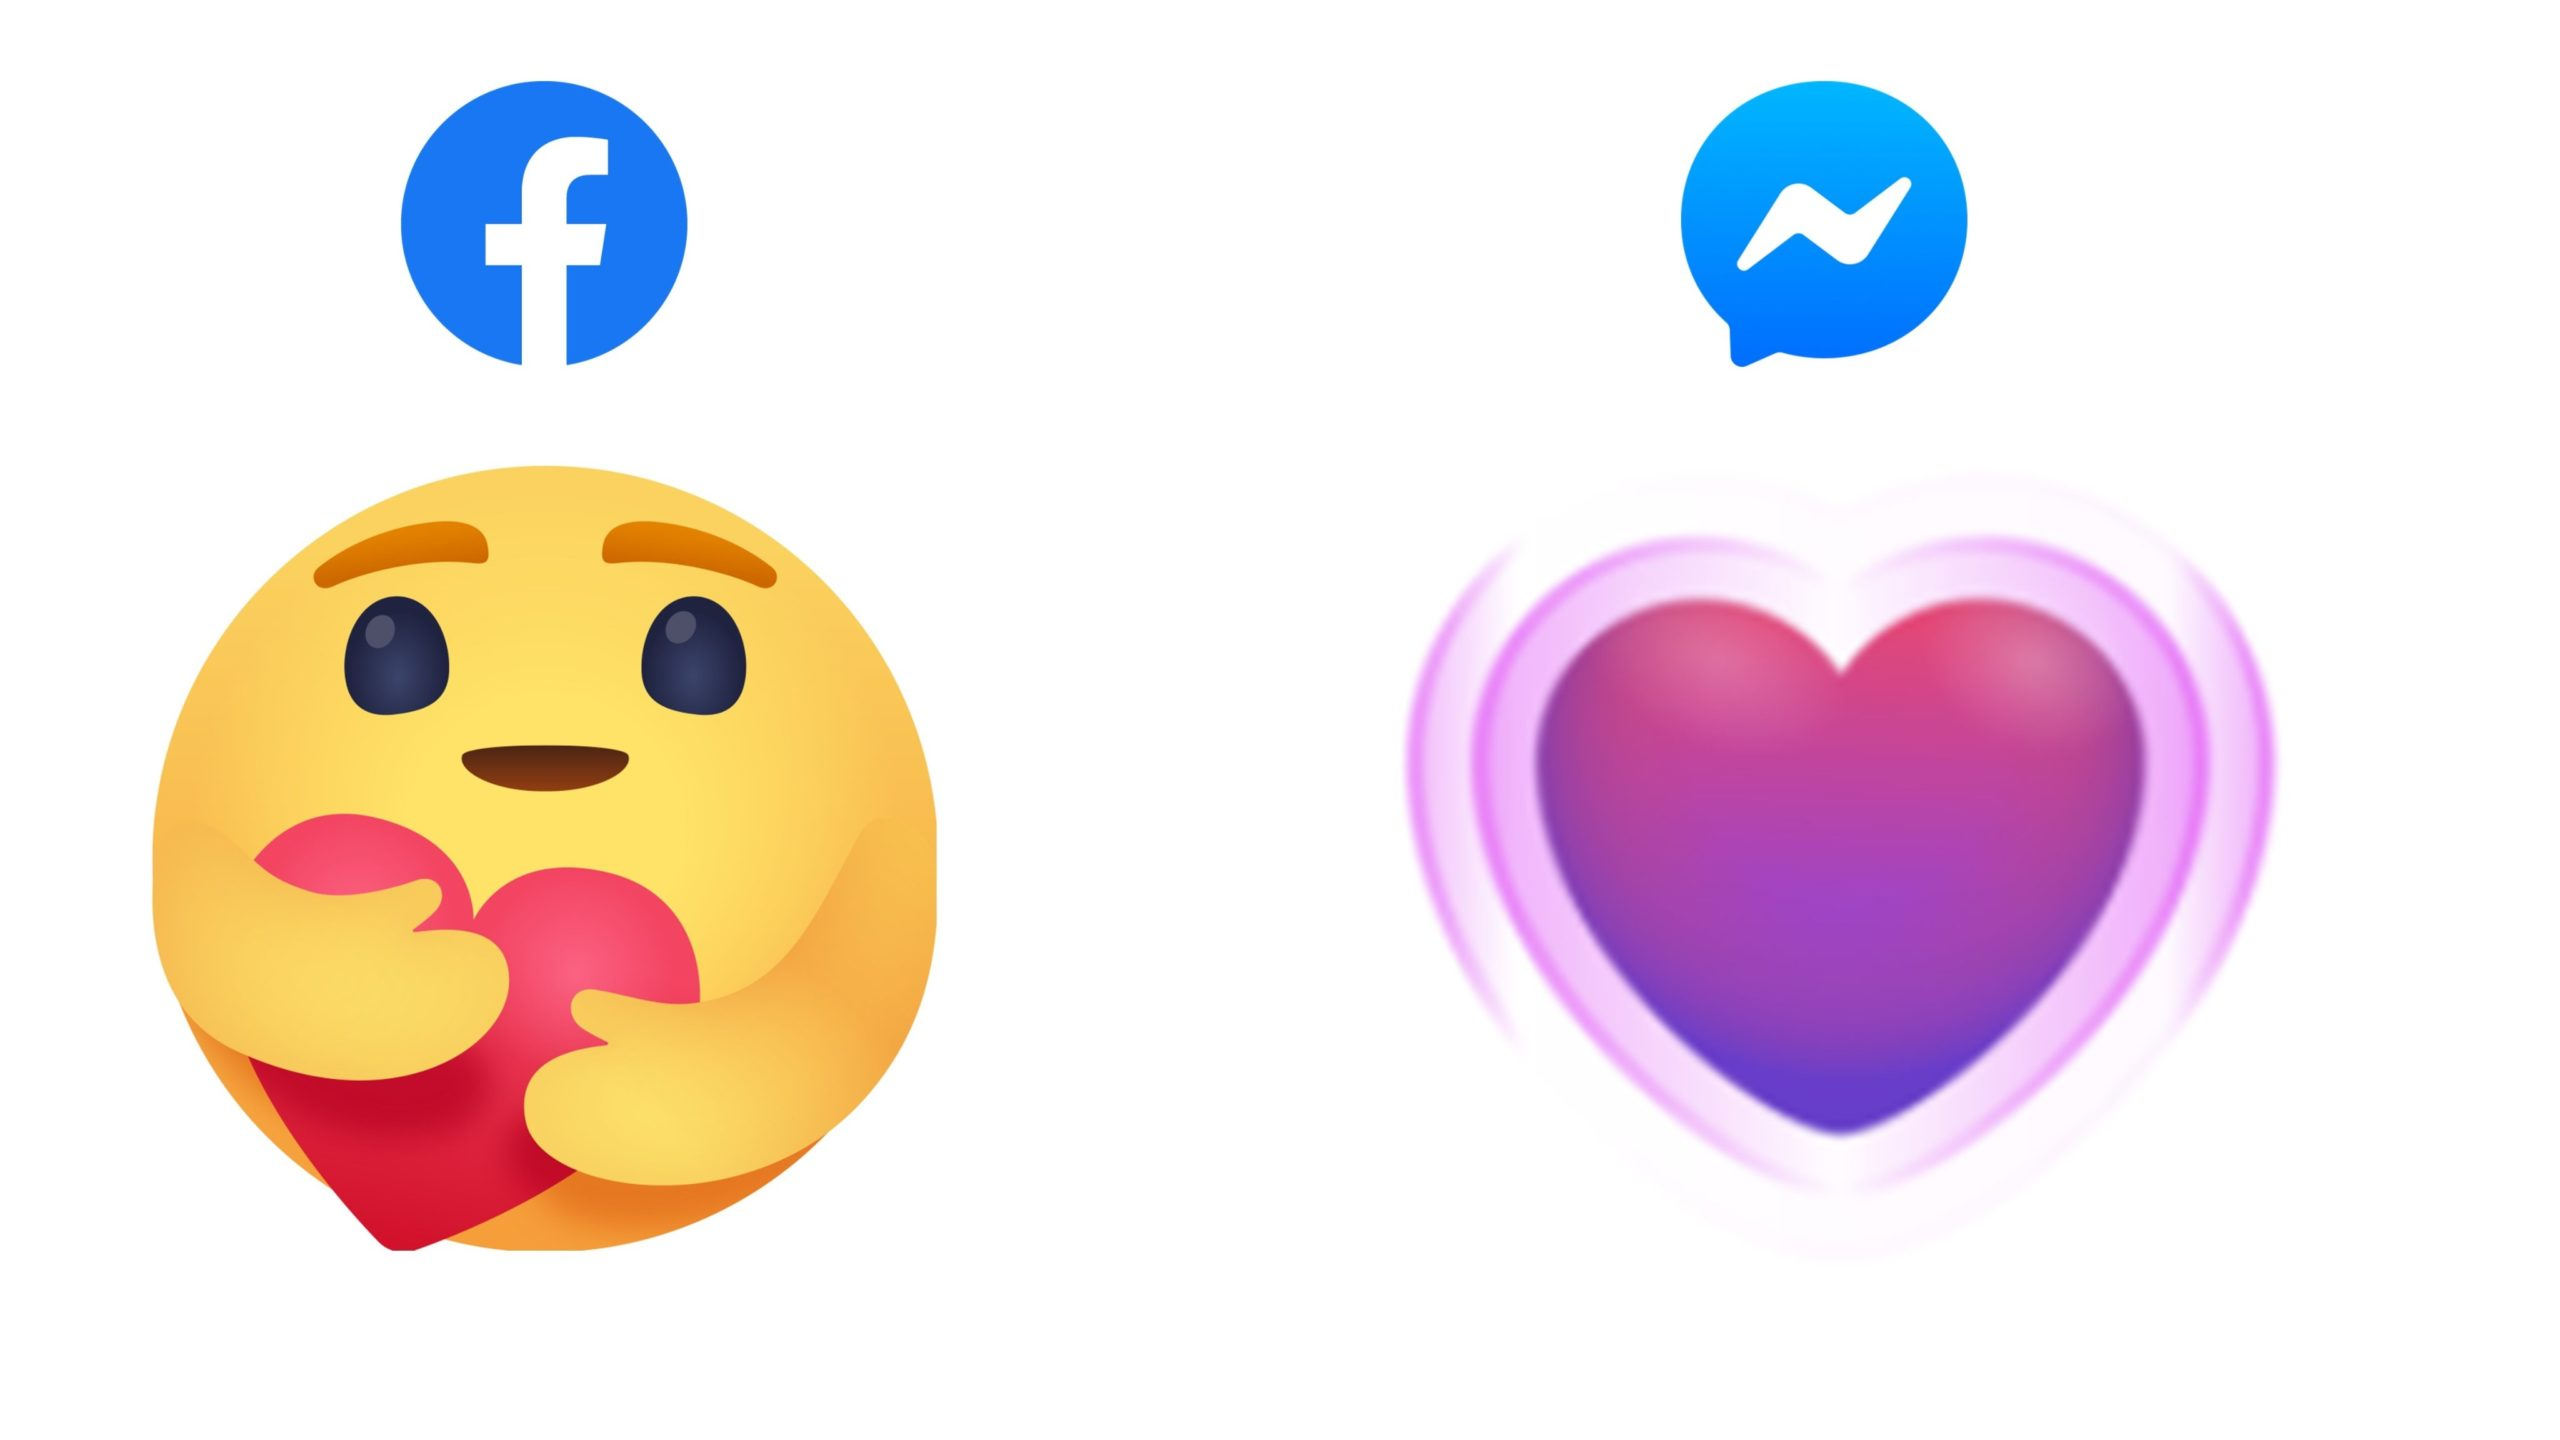 Facebook is launching new Care reactions on Facebook and Messenger